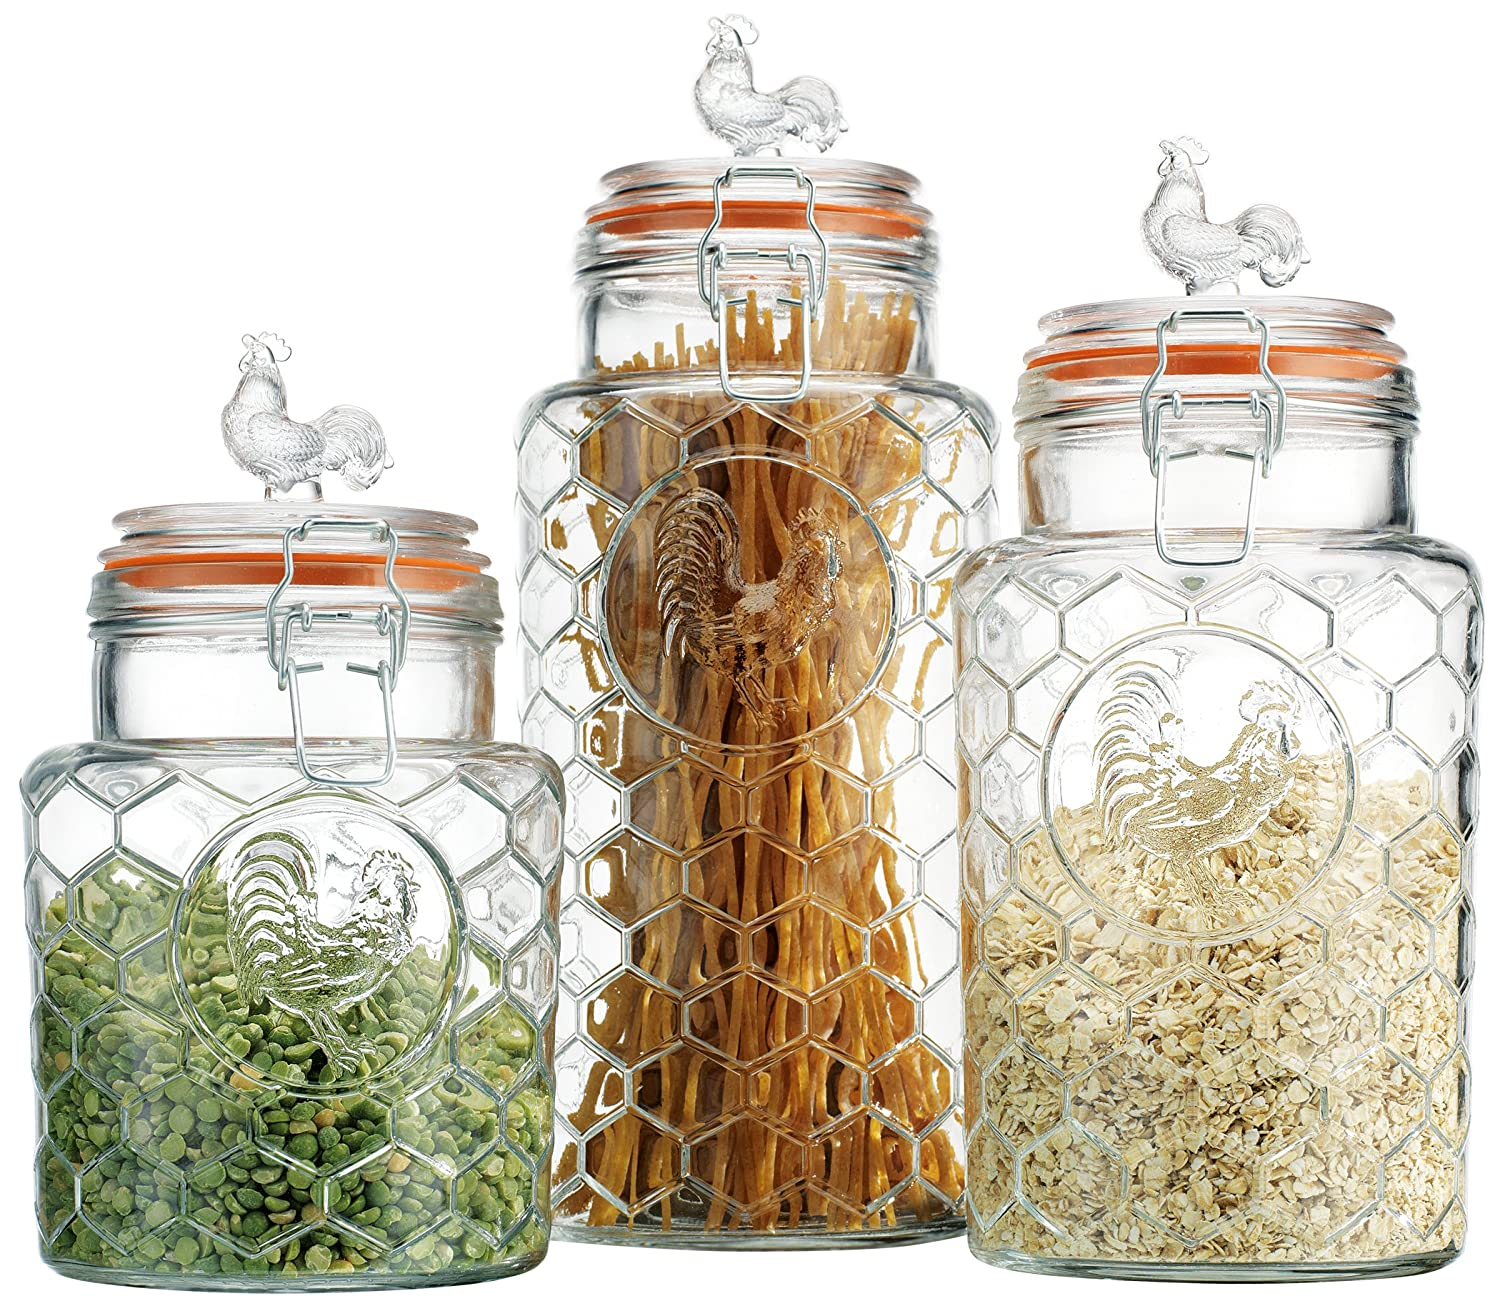 amazon com palais rooster clear glass canister with bail amazon com palais rooster clear glass canister with bail trigger locking lids set of 3 7